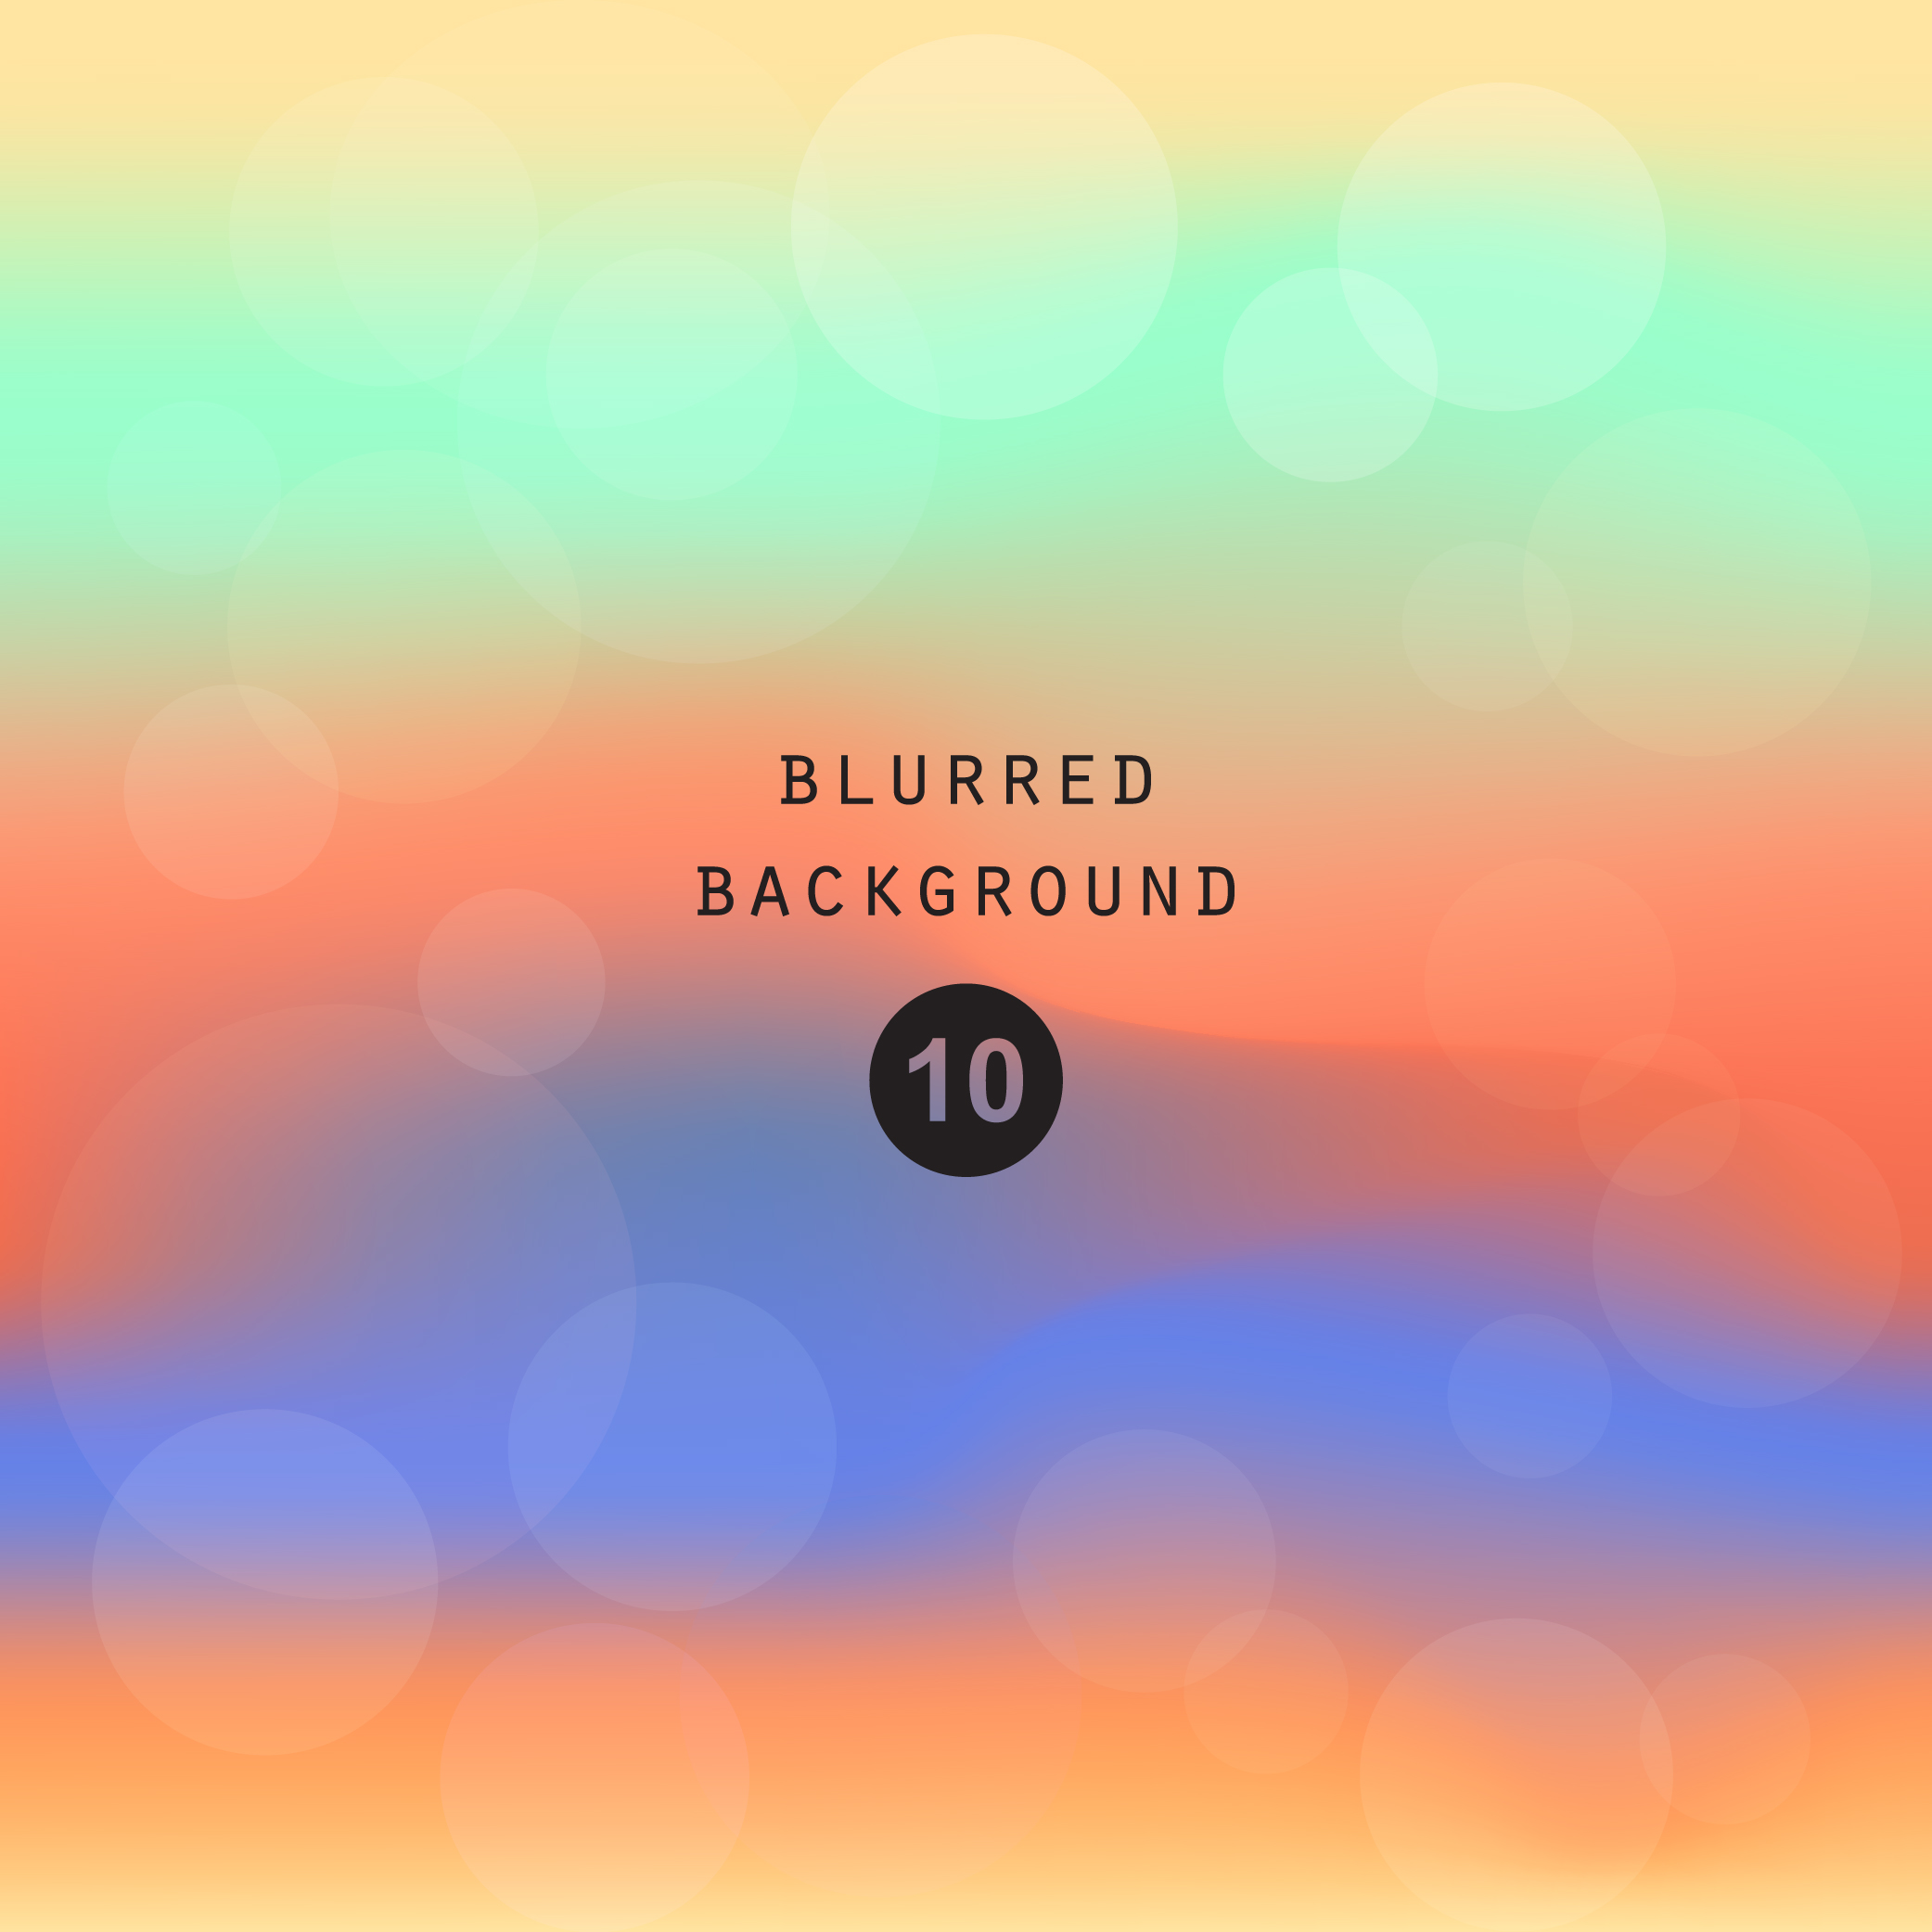 Colorful bright smooth gradient background wallpaper example image 5